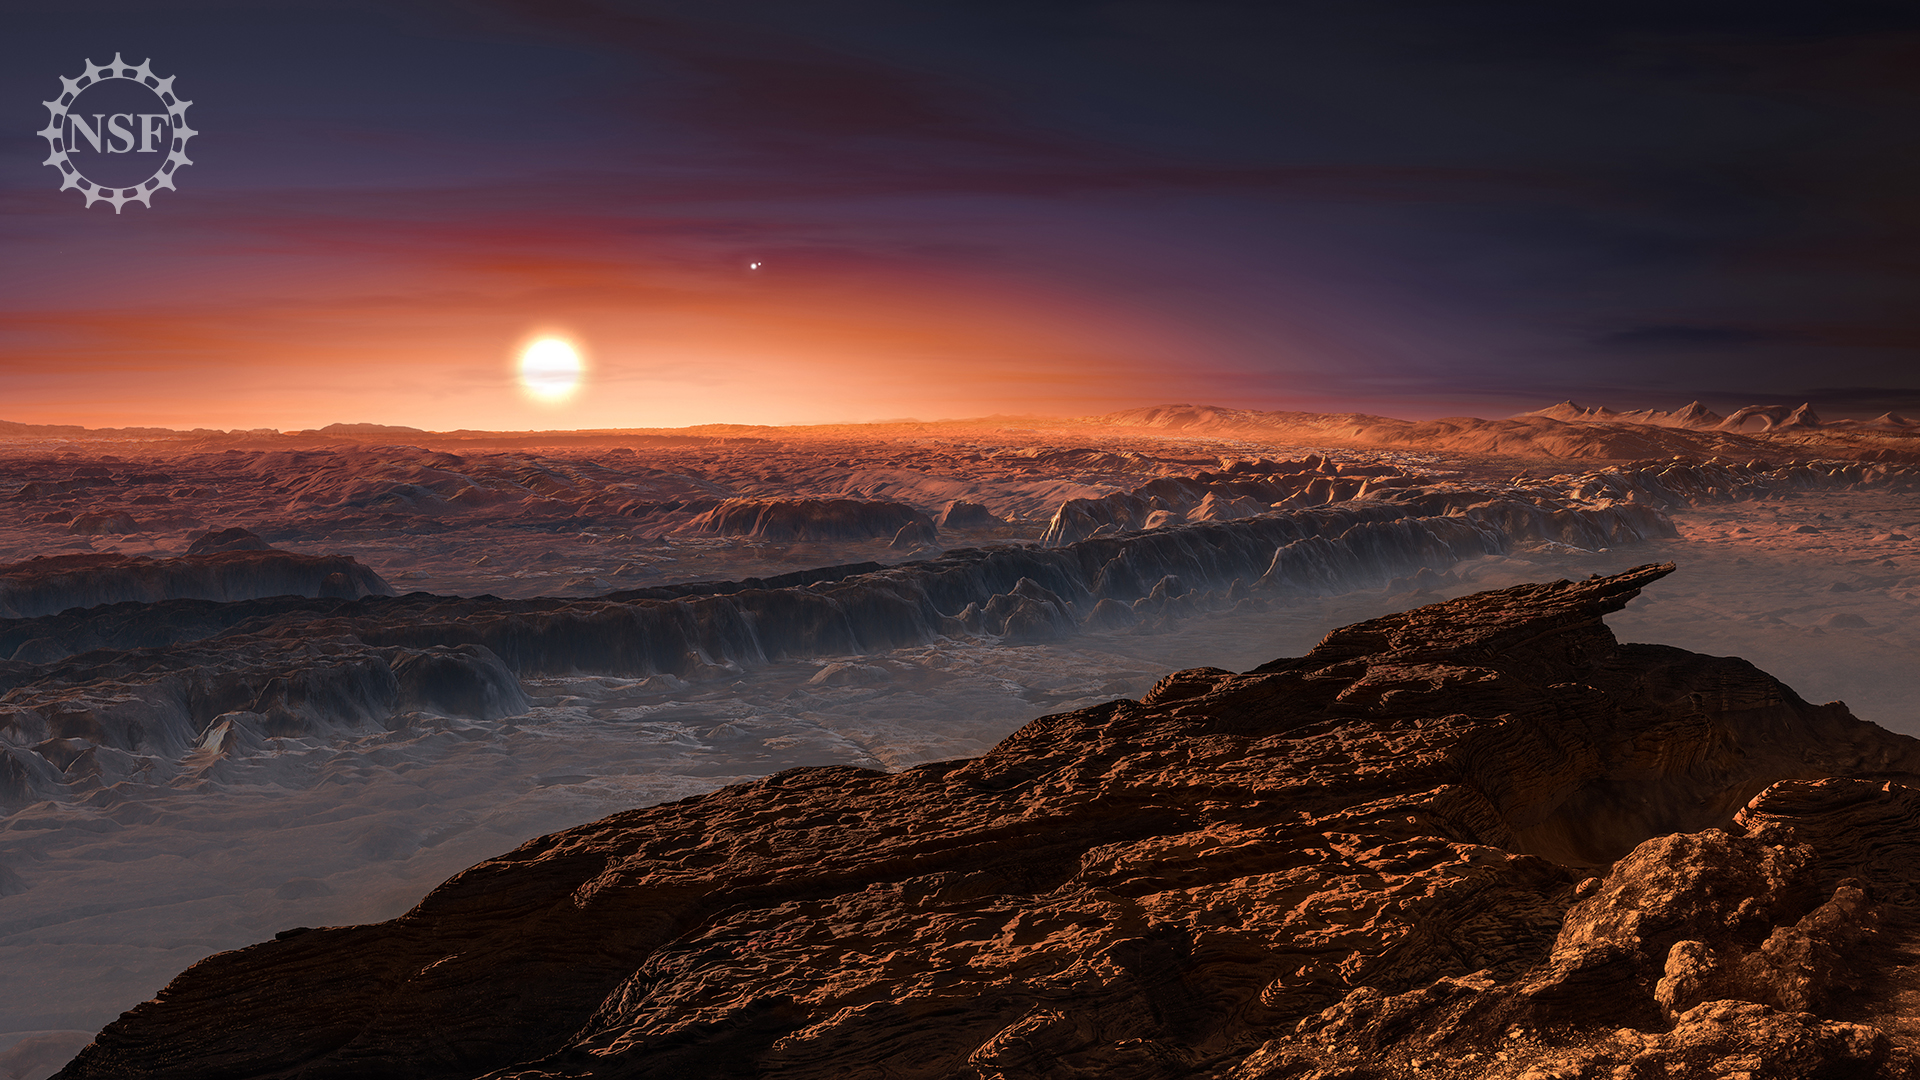 An artist's interpretation of the potentially habitable planet Proxima b orbiting the red dwarf star Proxima Centauri